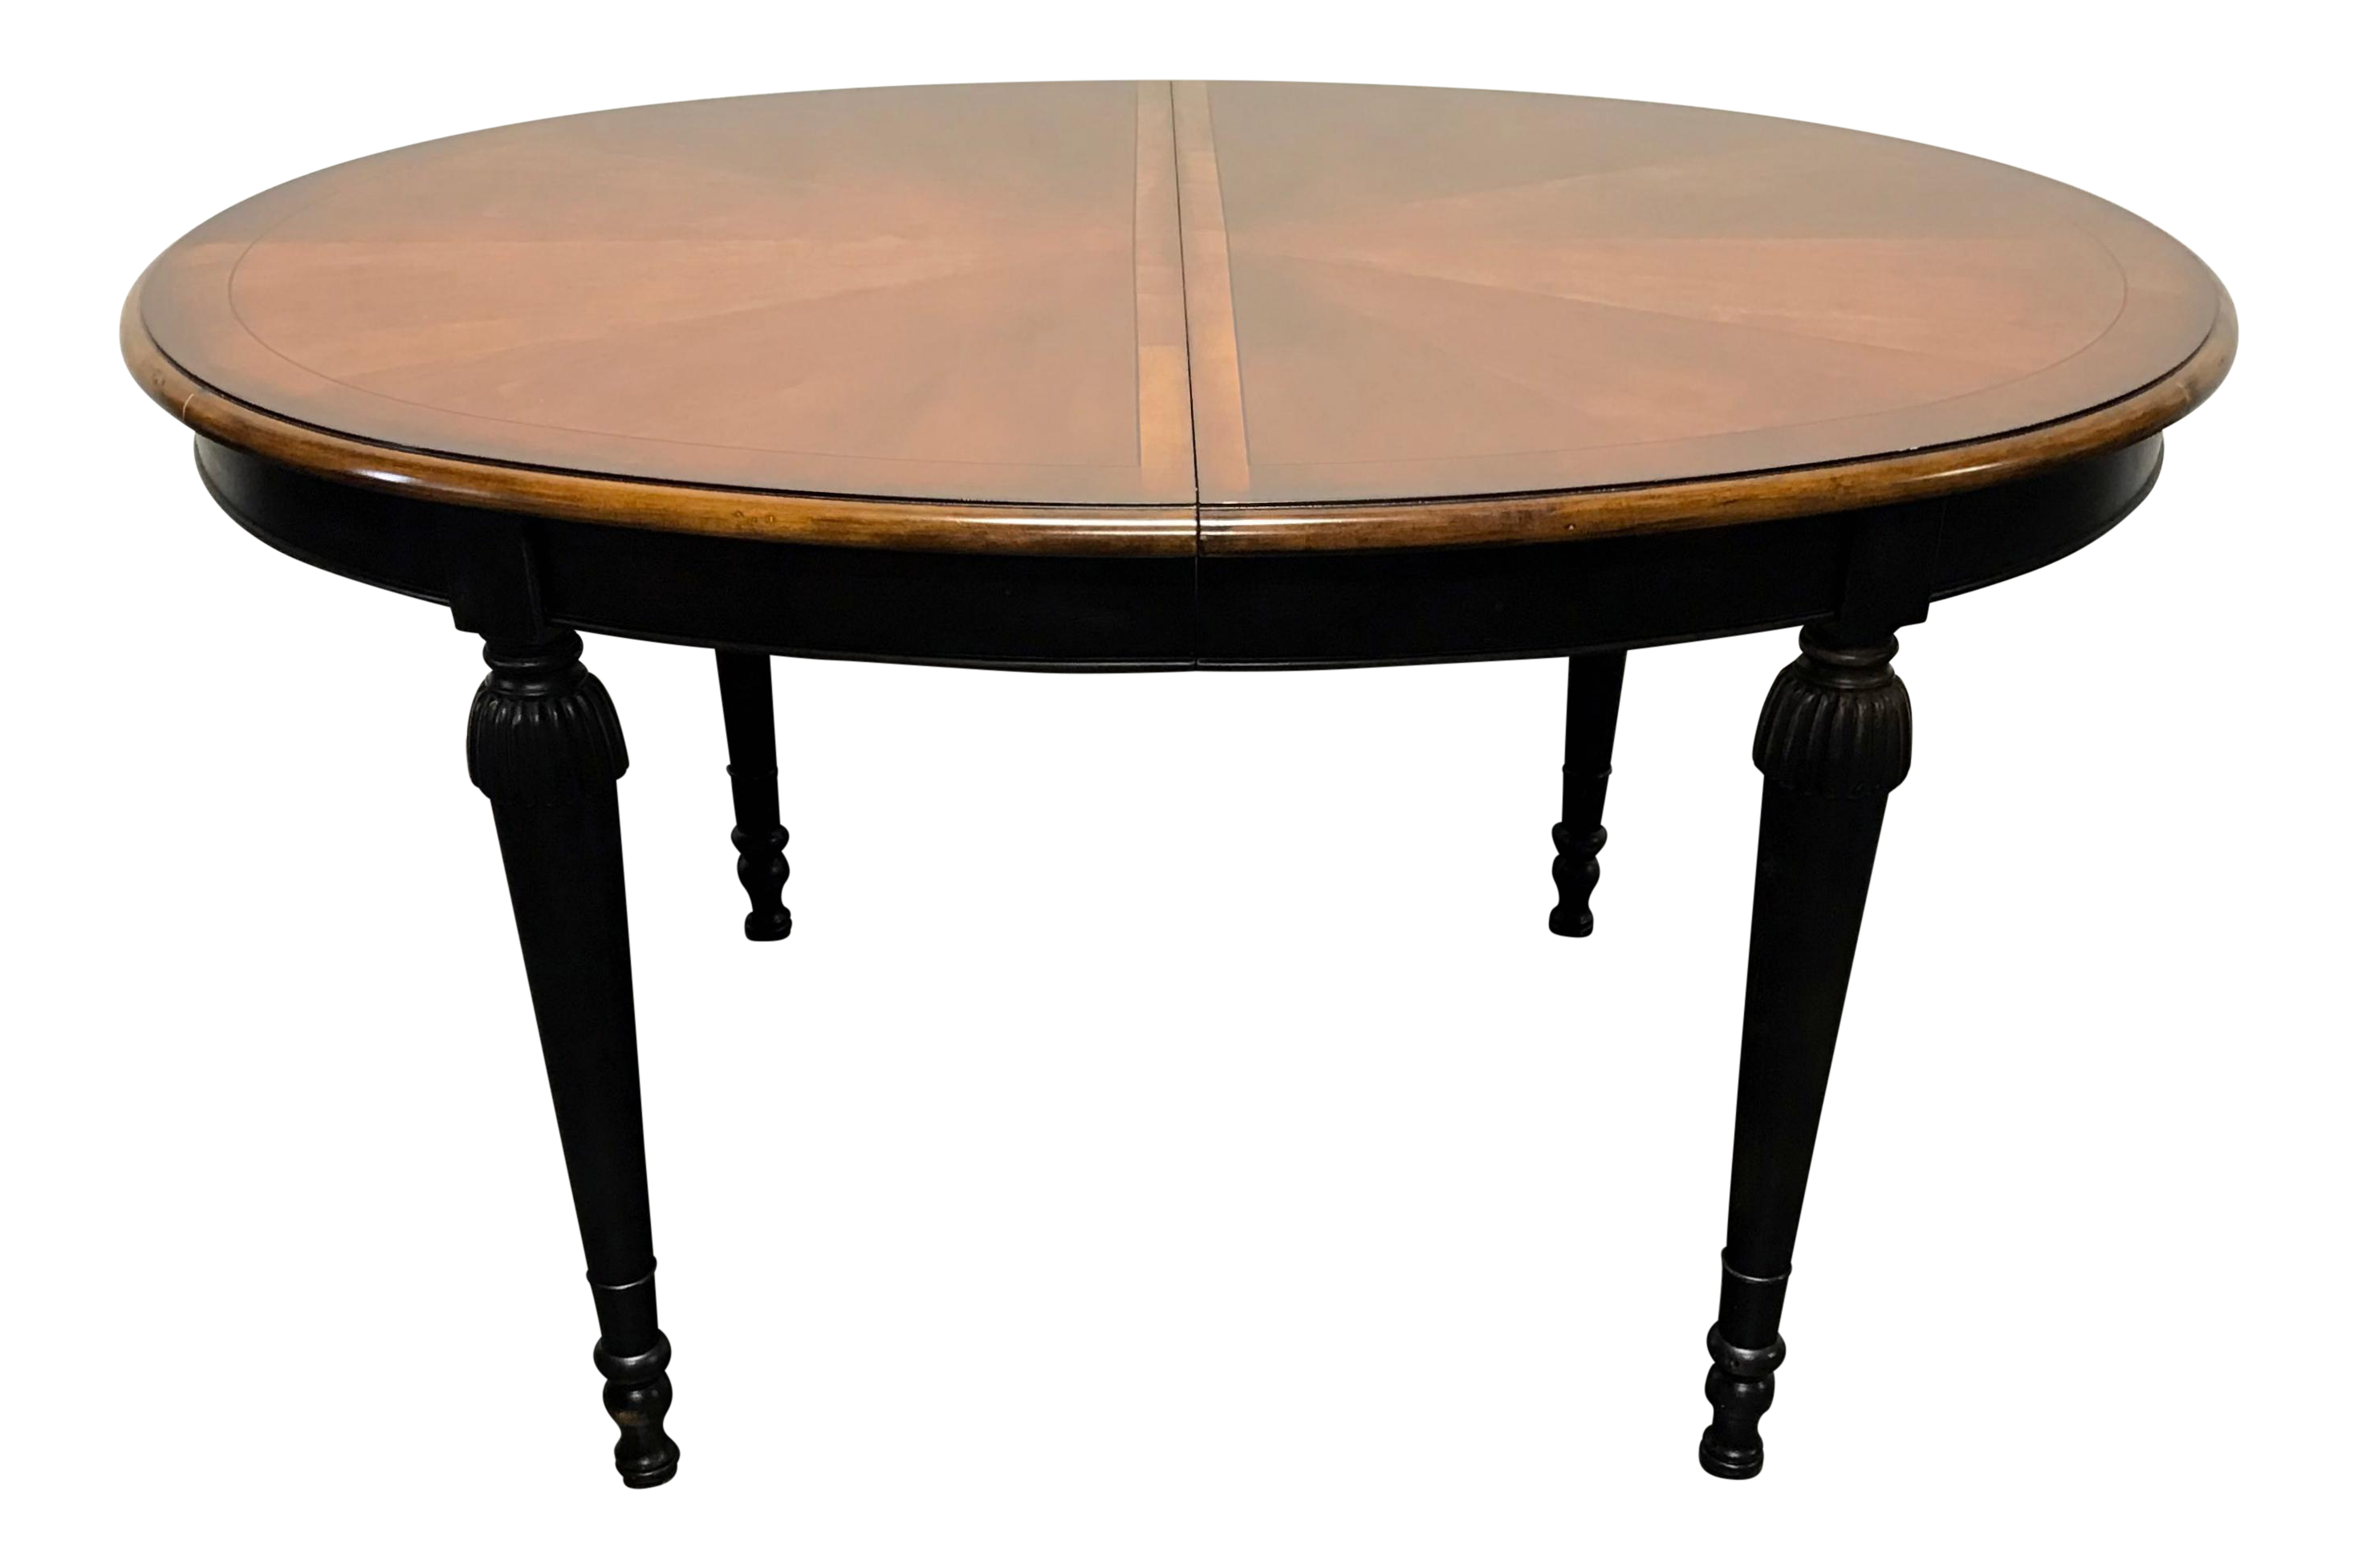 drexel heritage accents francais collection banded cherry oval dining table chairish high end living room furniture teal metal side west elm ott industrial style coffee tables